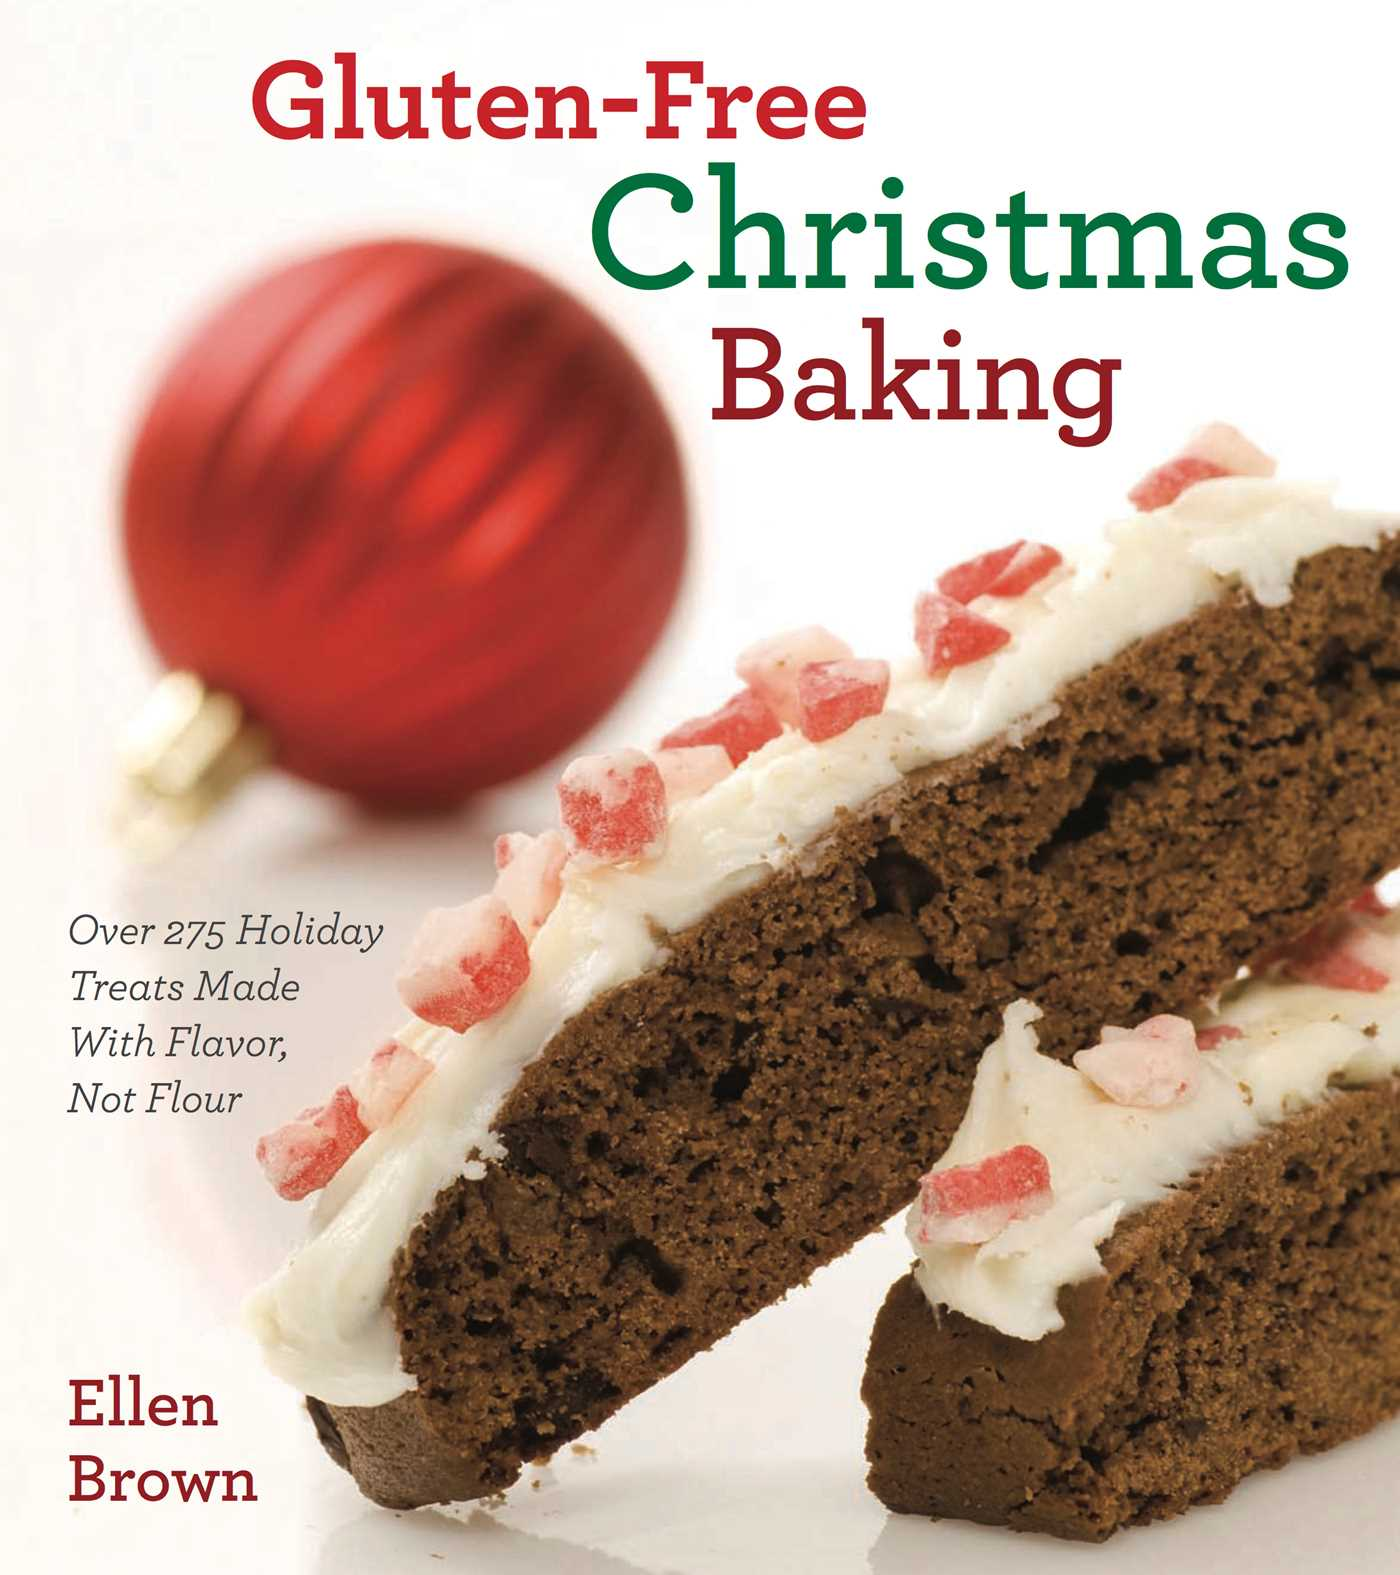 Gluten free christmas baking 9781604335569 hr